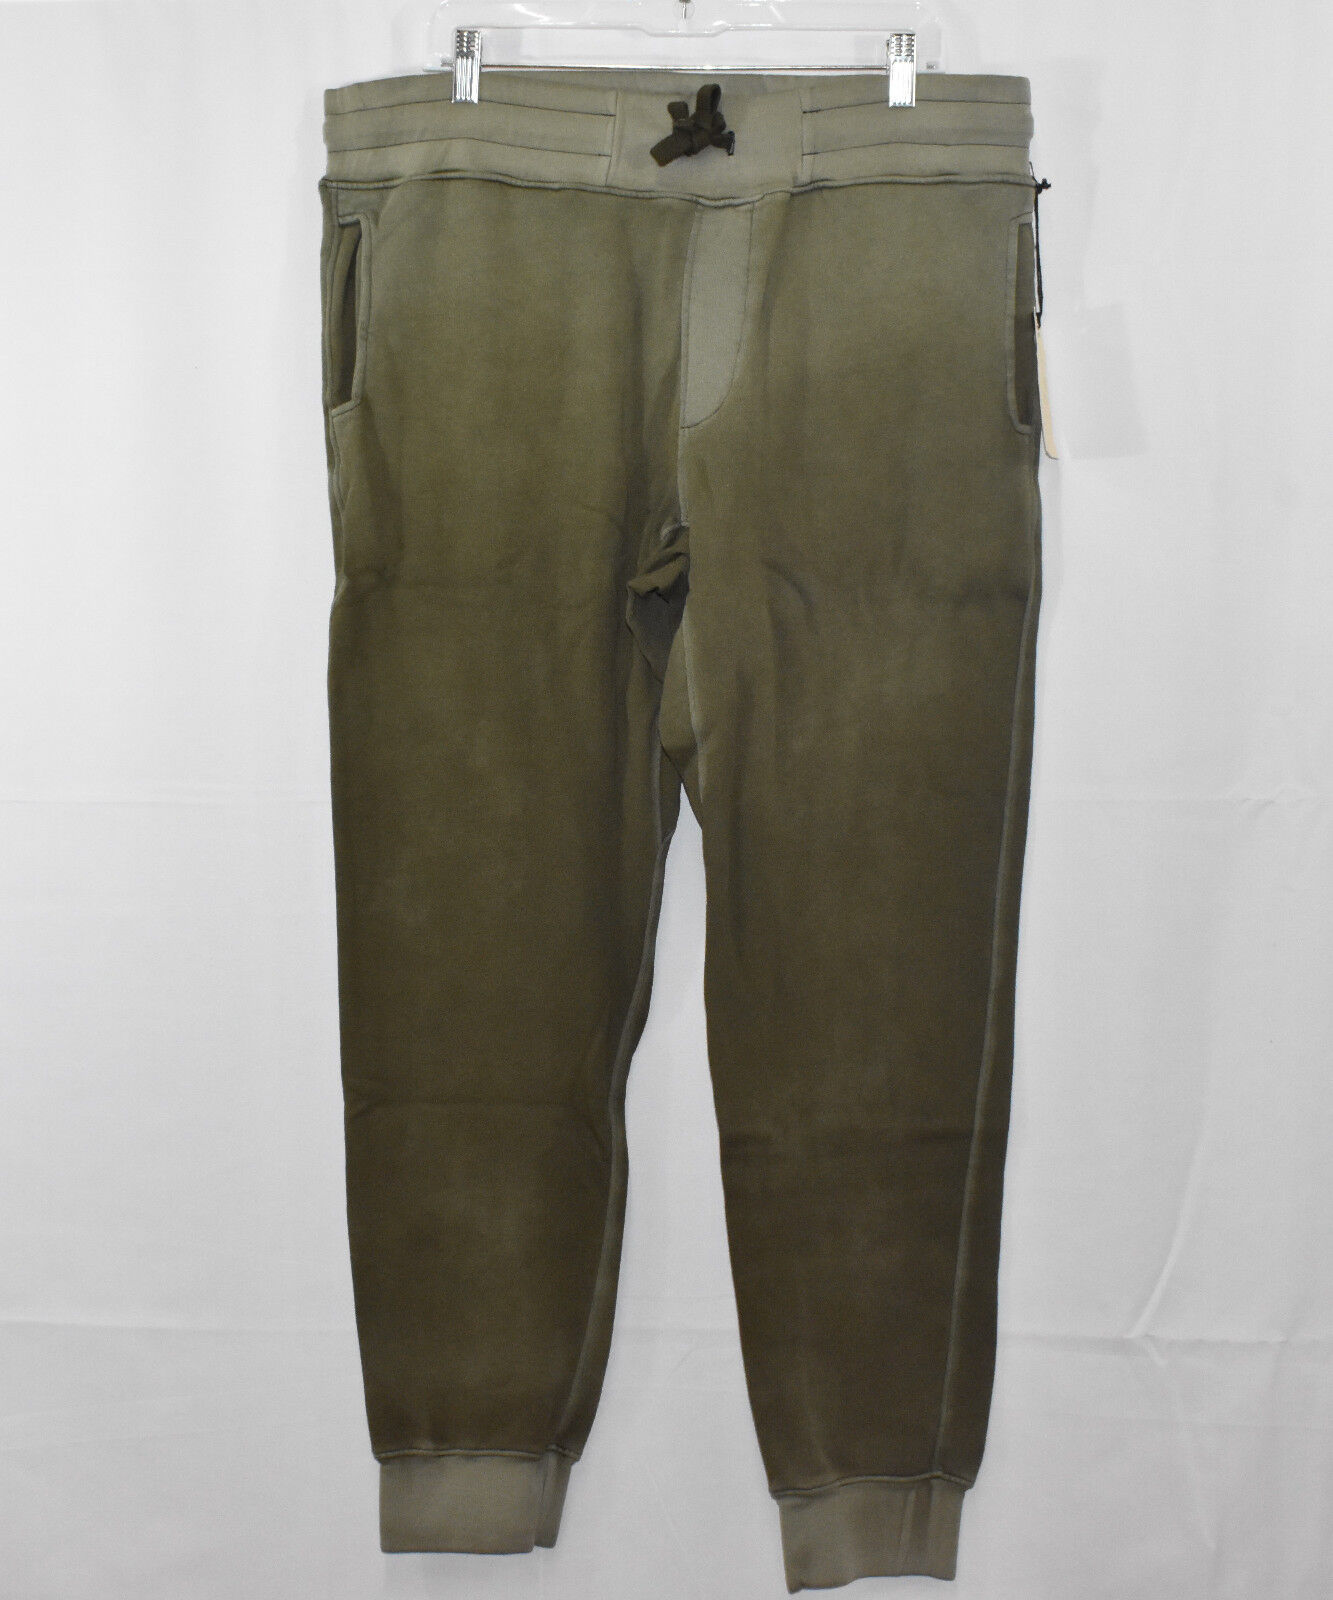 M904826 11-85A CC7 COTTON CITIZEN  Herren OLIVE SWEATPANTS W/ GUNMETAL ZIPPERS